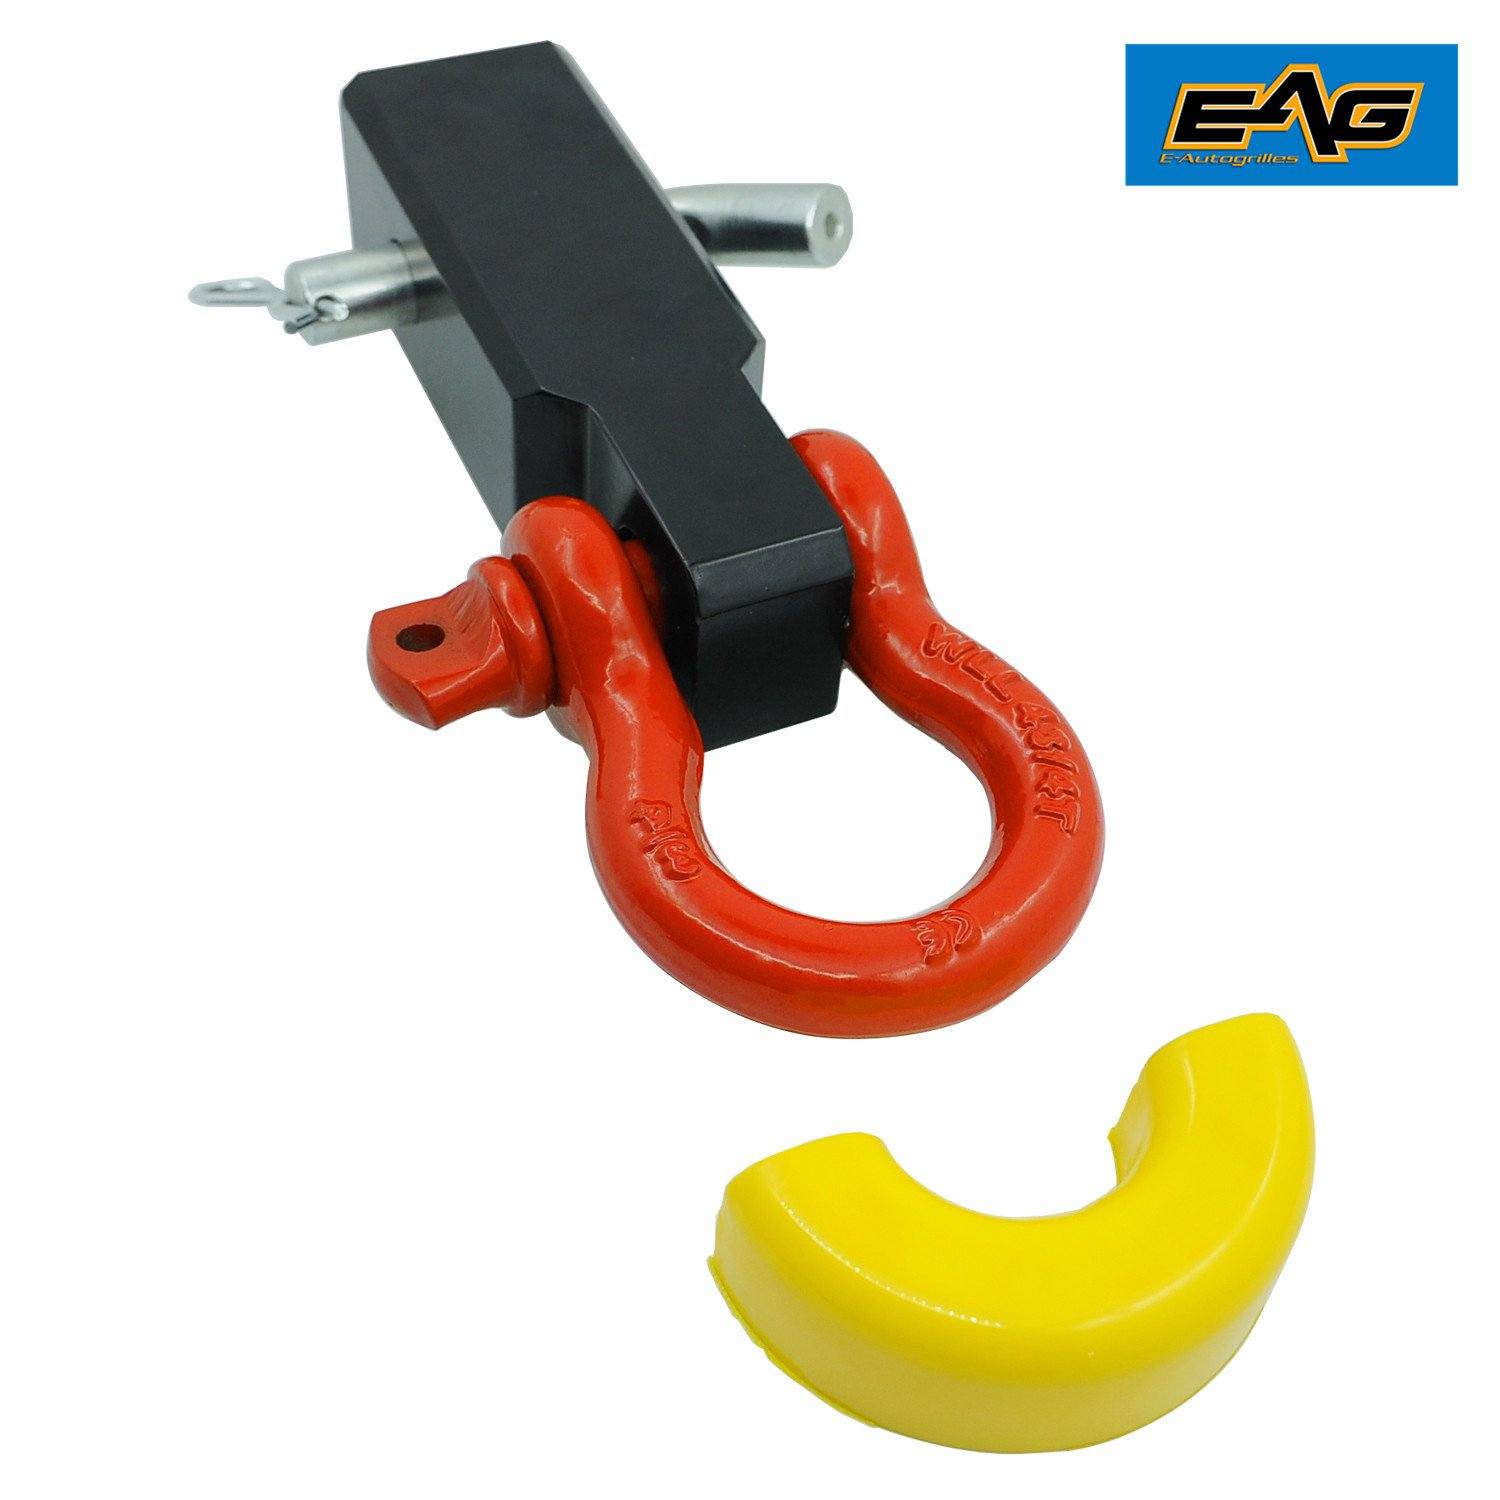 EAG Universal 2 Hitch Reciever D-Ring Shackle with Yellow Isolator